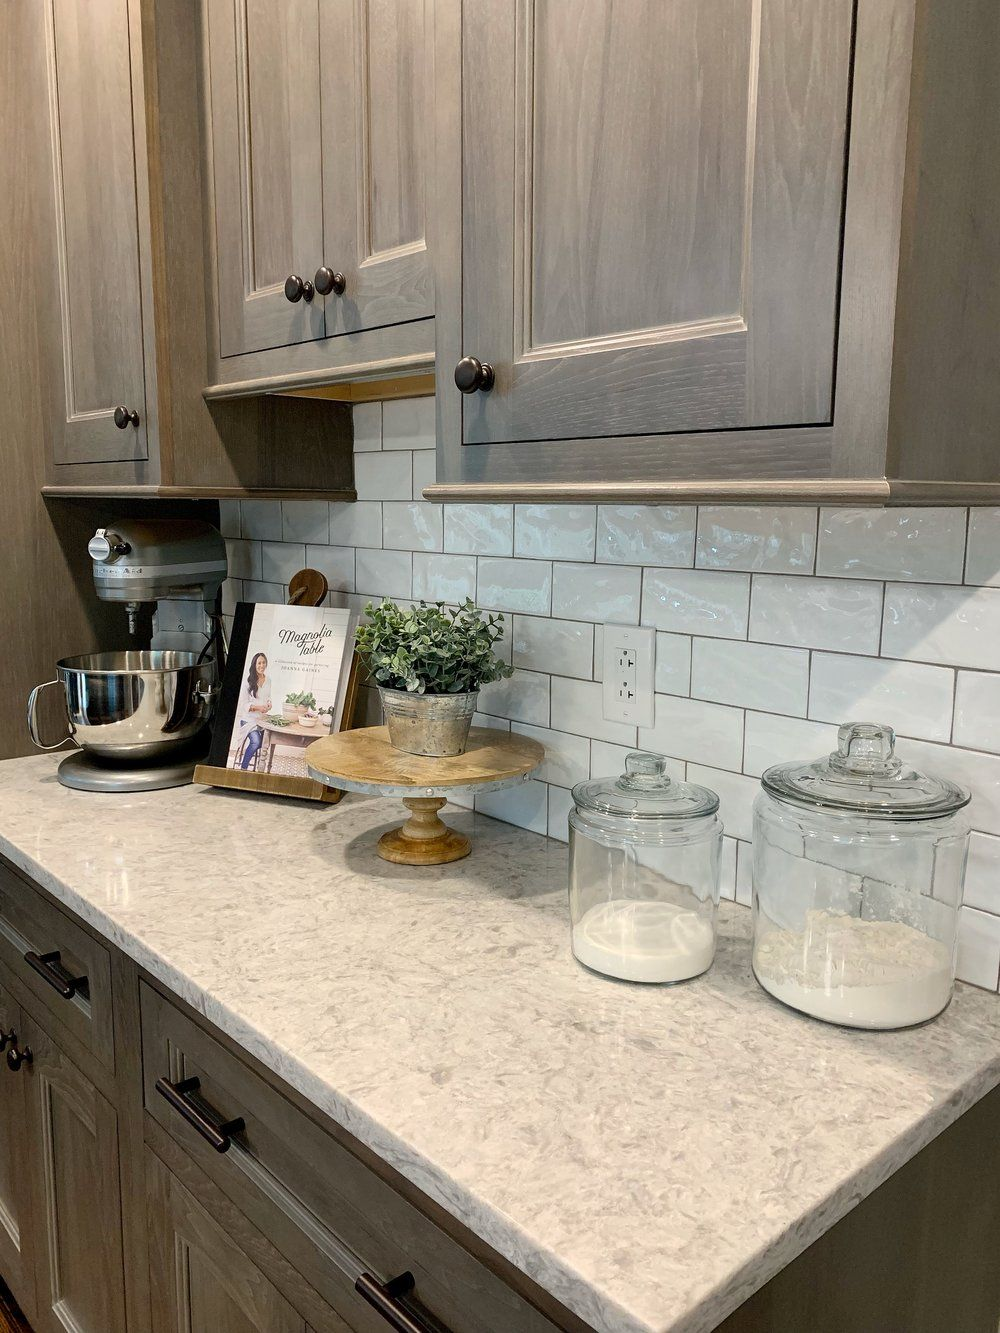 Ideas for Kitchen Countertop Decor in 2020 (With images ... on Countertop Decor  id=97113